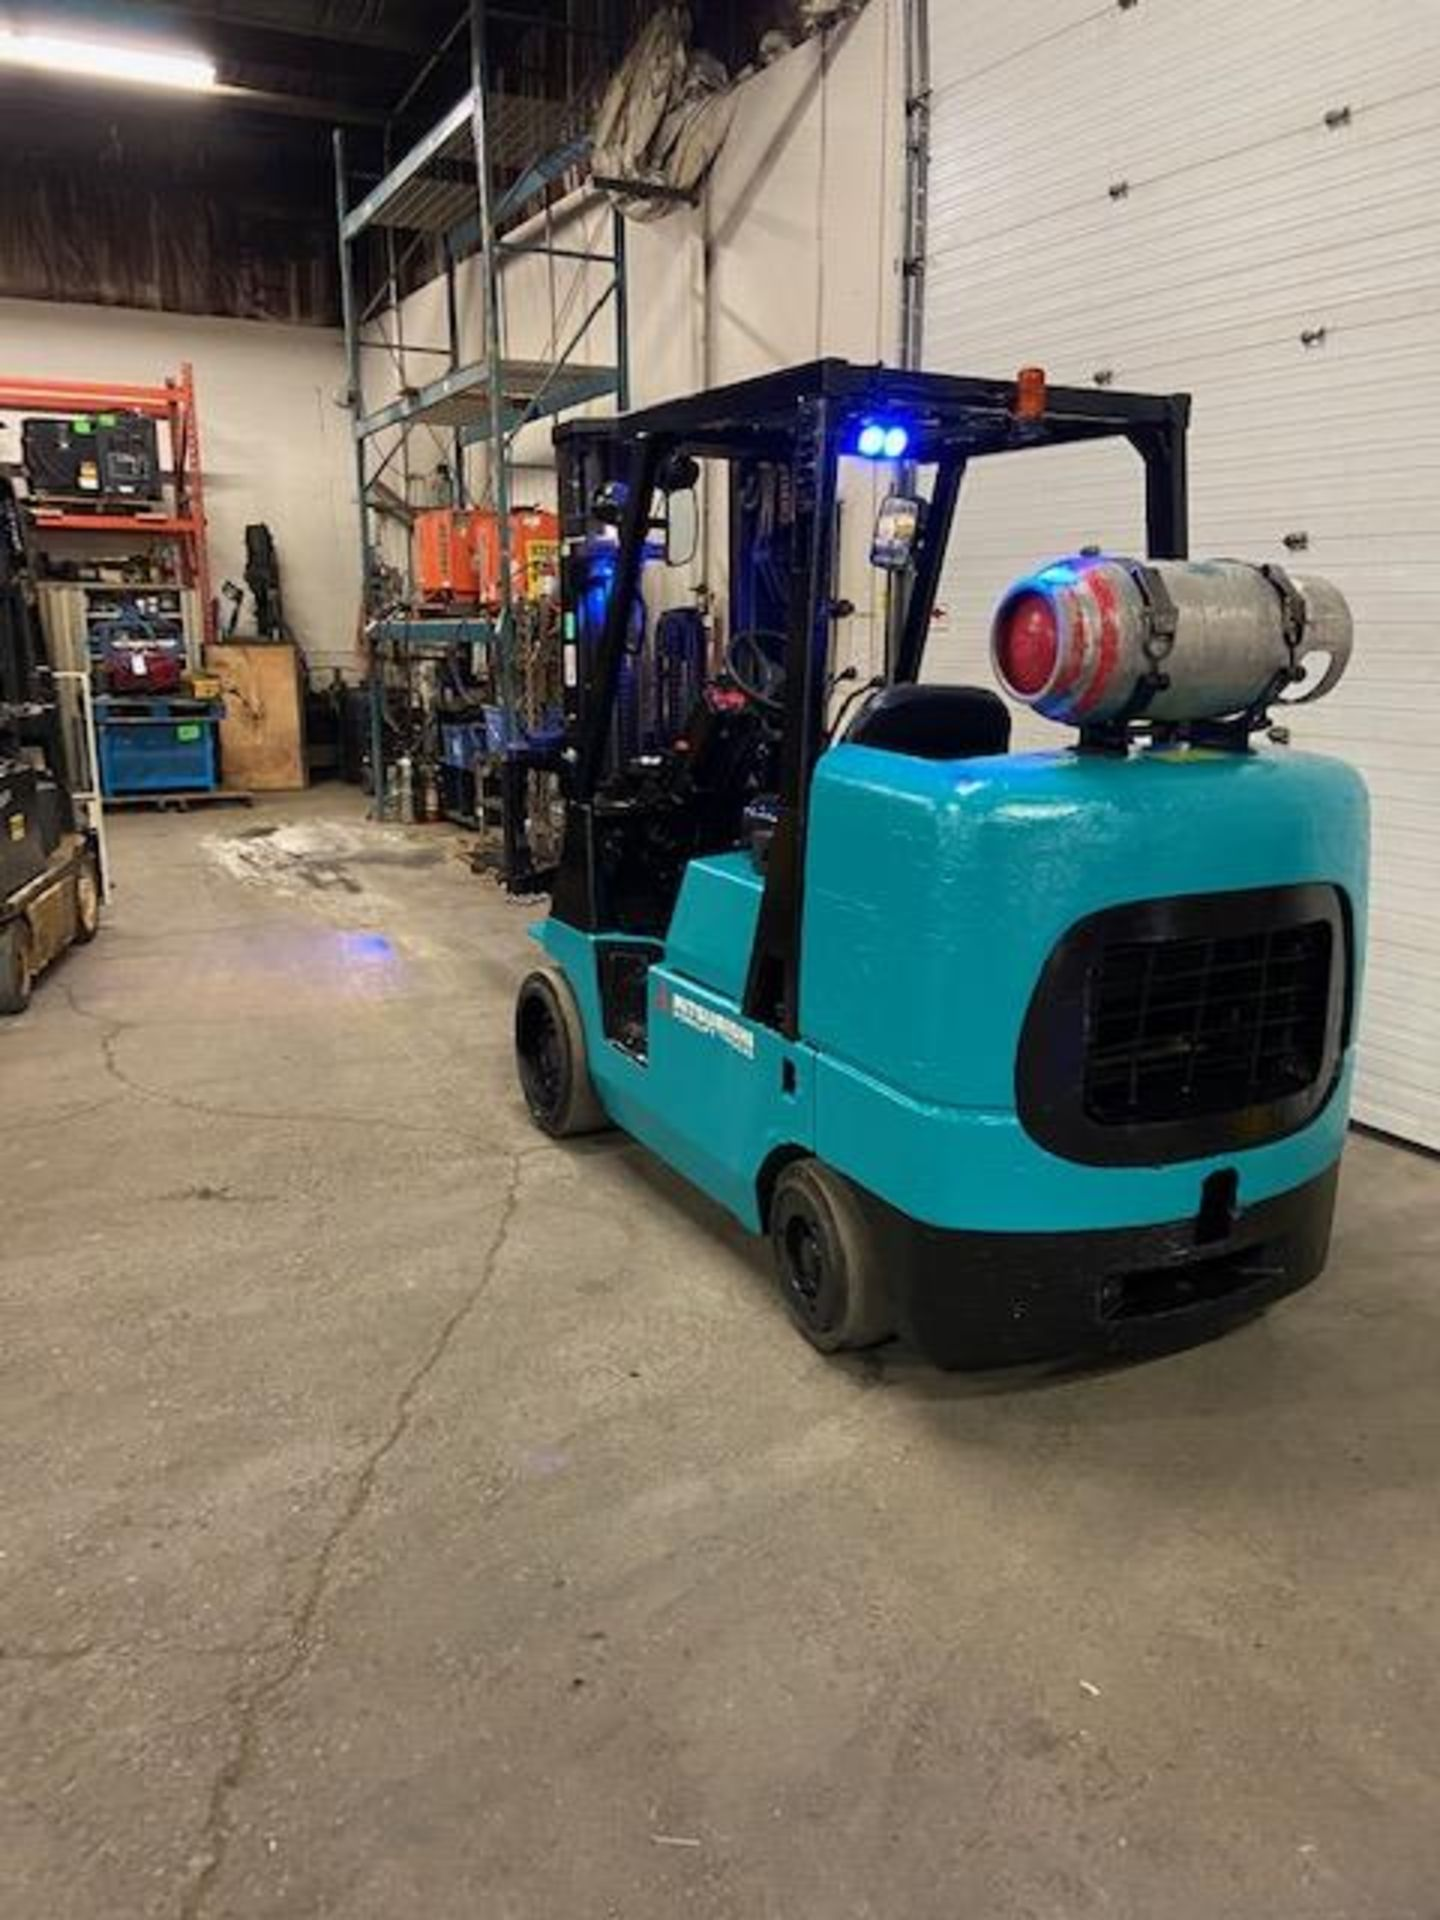 FREE CUSTOMS - Mitsubishi 10000lbs capacity LPG (propane) Forklift with 3-stage mast and sideshift - Image 3 of 3